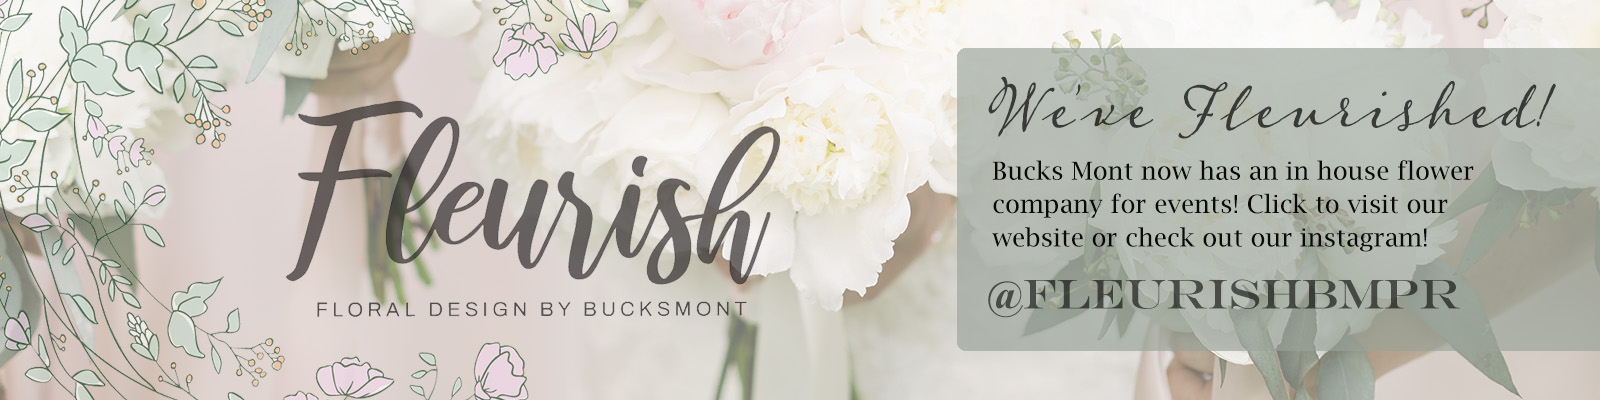 Event rentals in the Greater Philadelphia Area